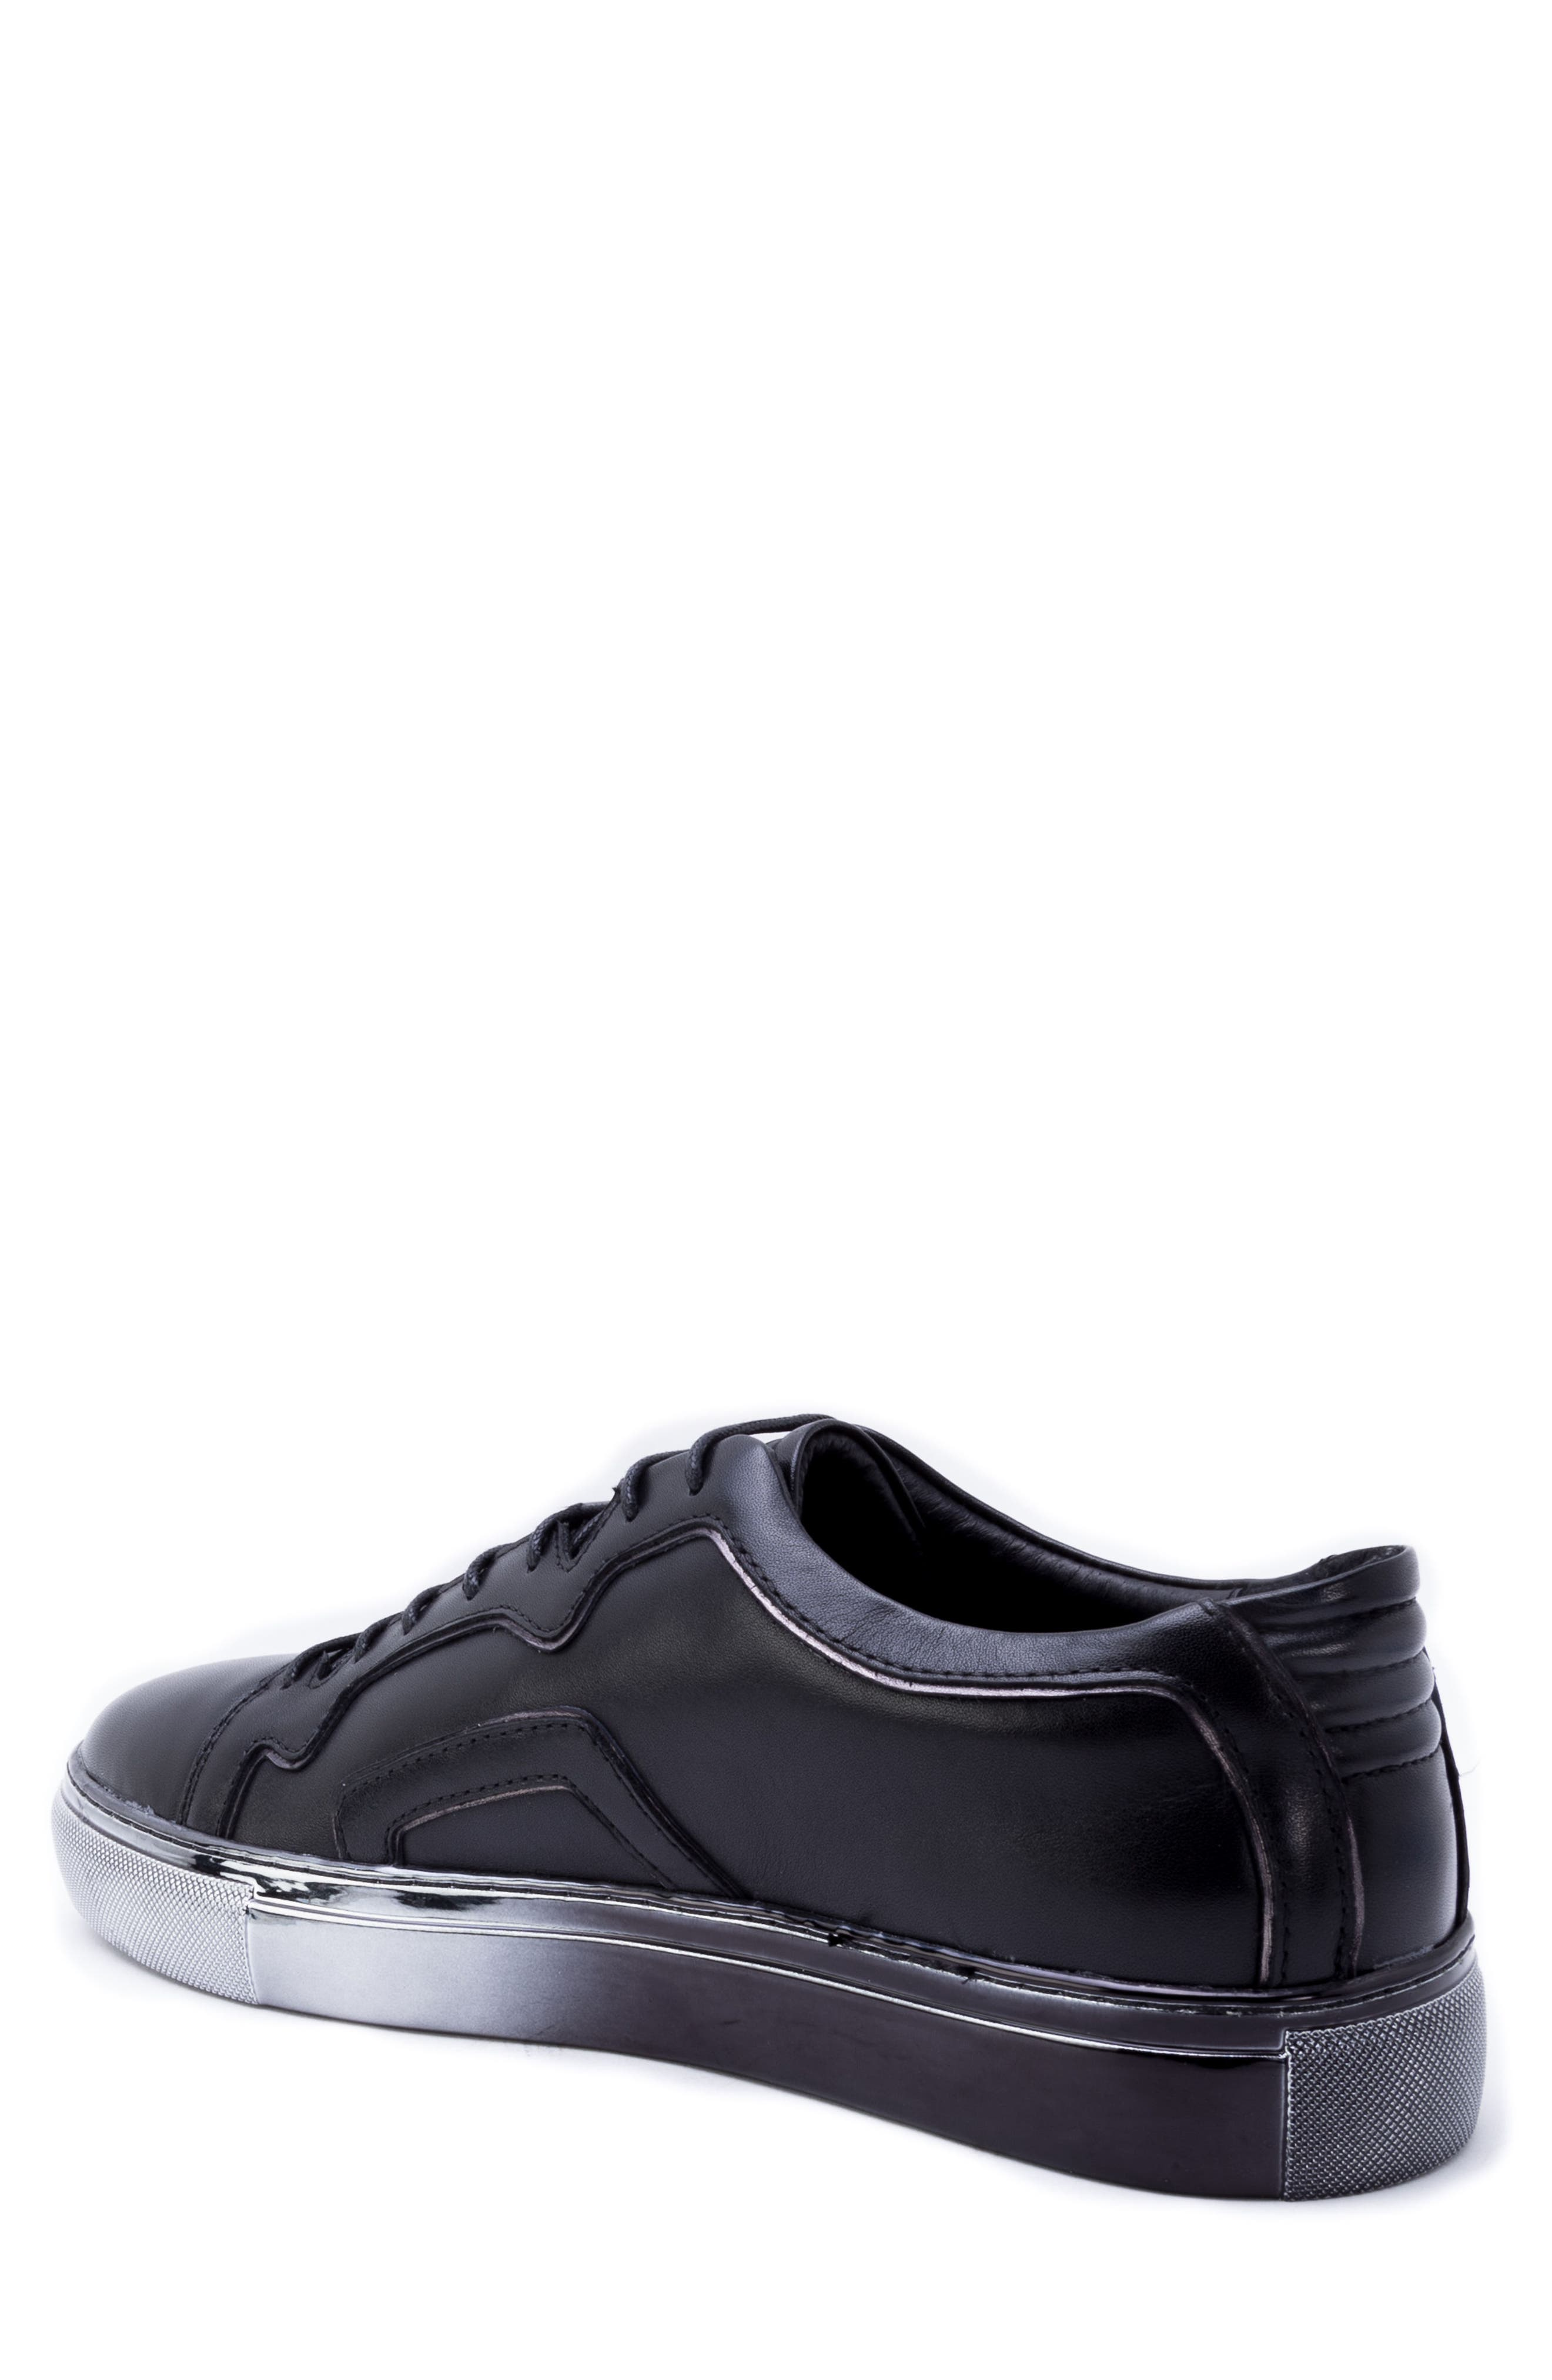 Caine Sneaker,                             Alternate thumbnail 2, color,                             BLACK LEATHER